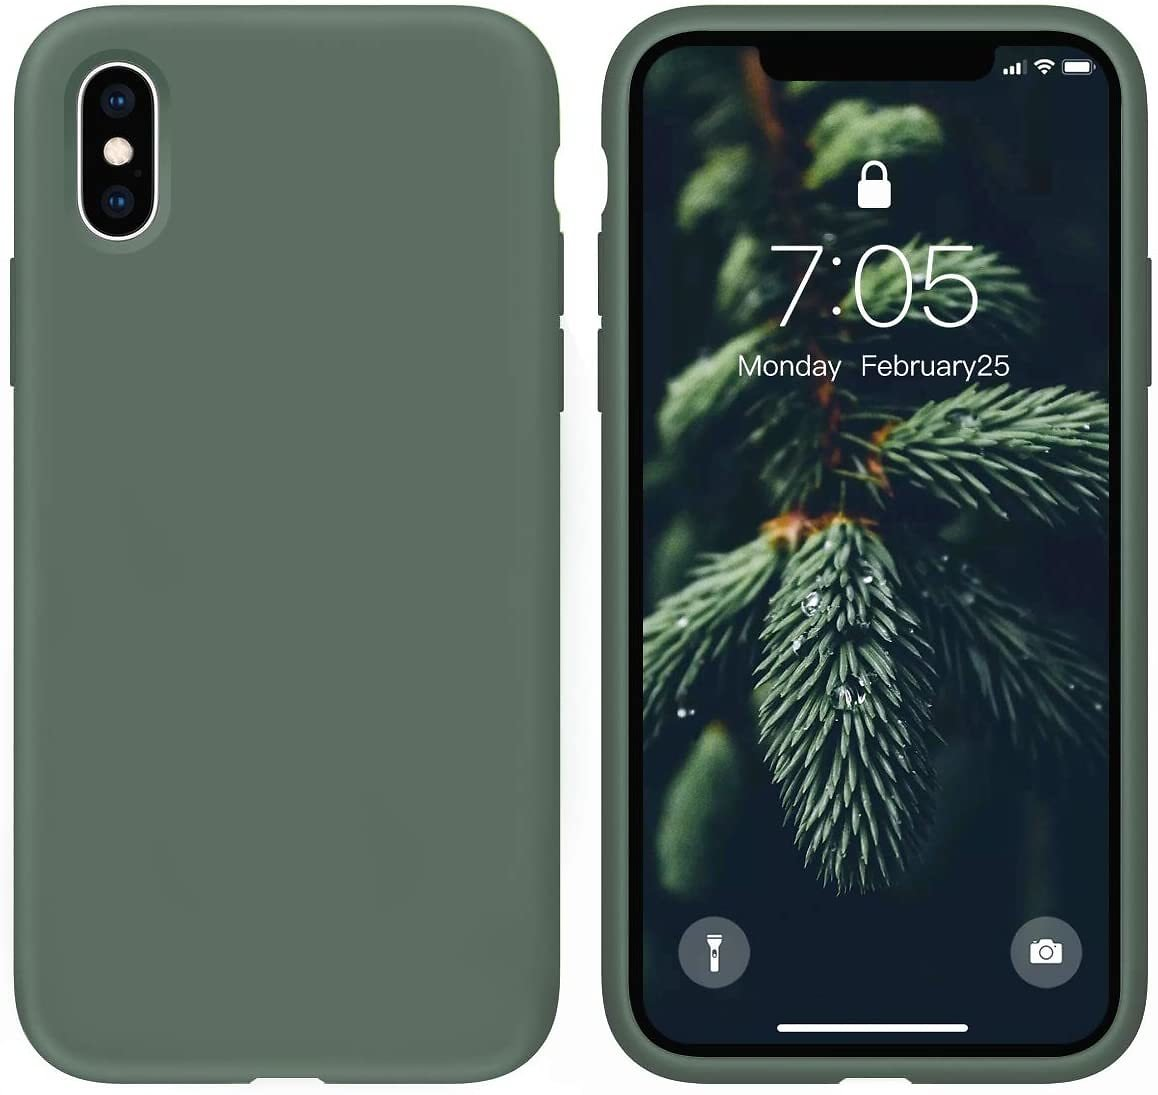 OUXUL Case for IPhone X/iPhone Xs Case Liquid Silicone Gel Rubber Phone Case,iPhone X/iPhone Xs 5.8 Inch Full Body Slim Soft Mic